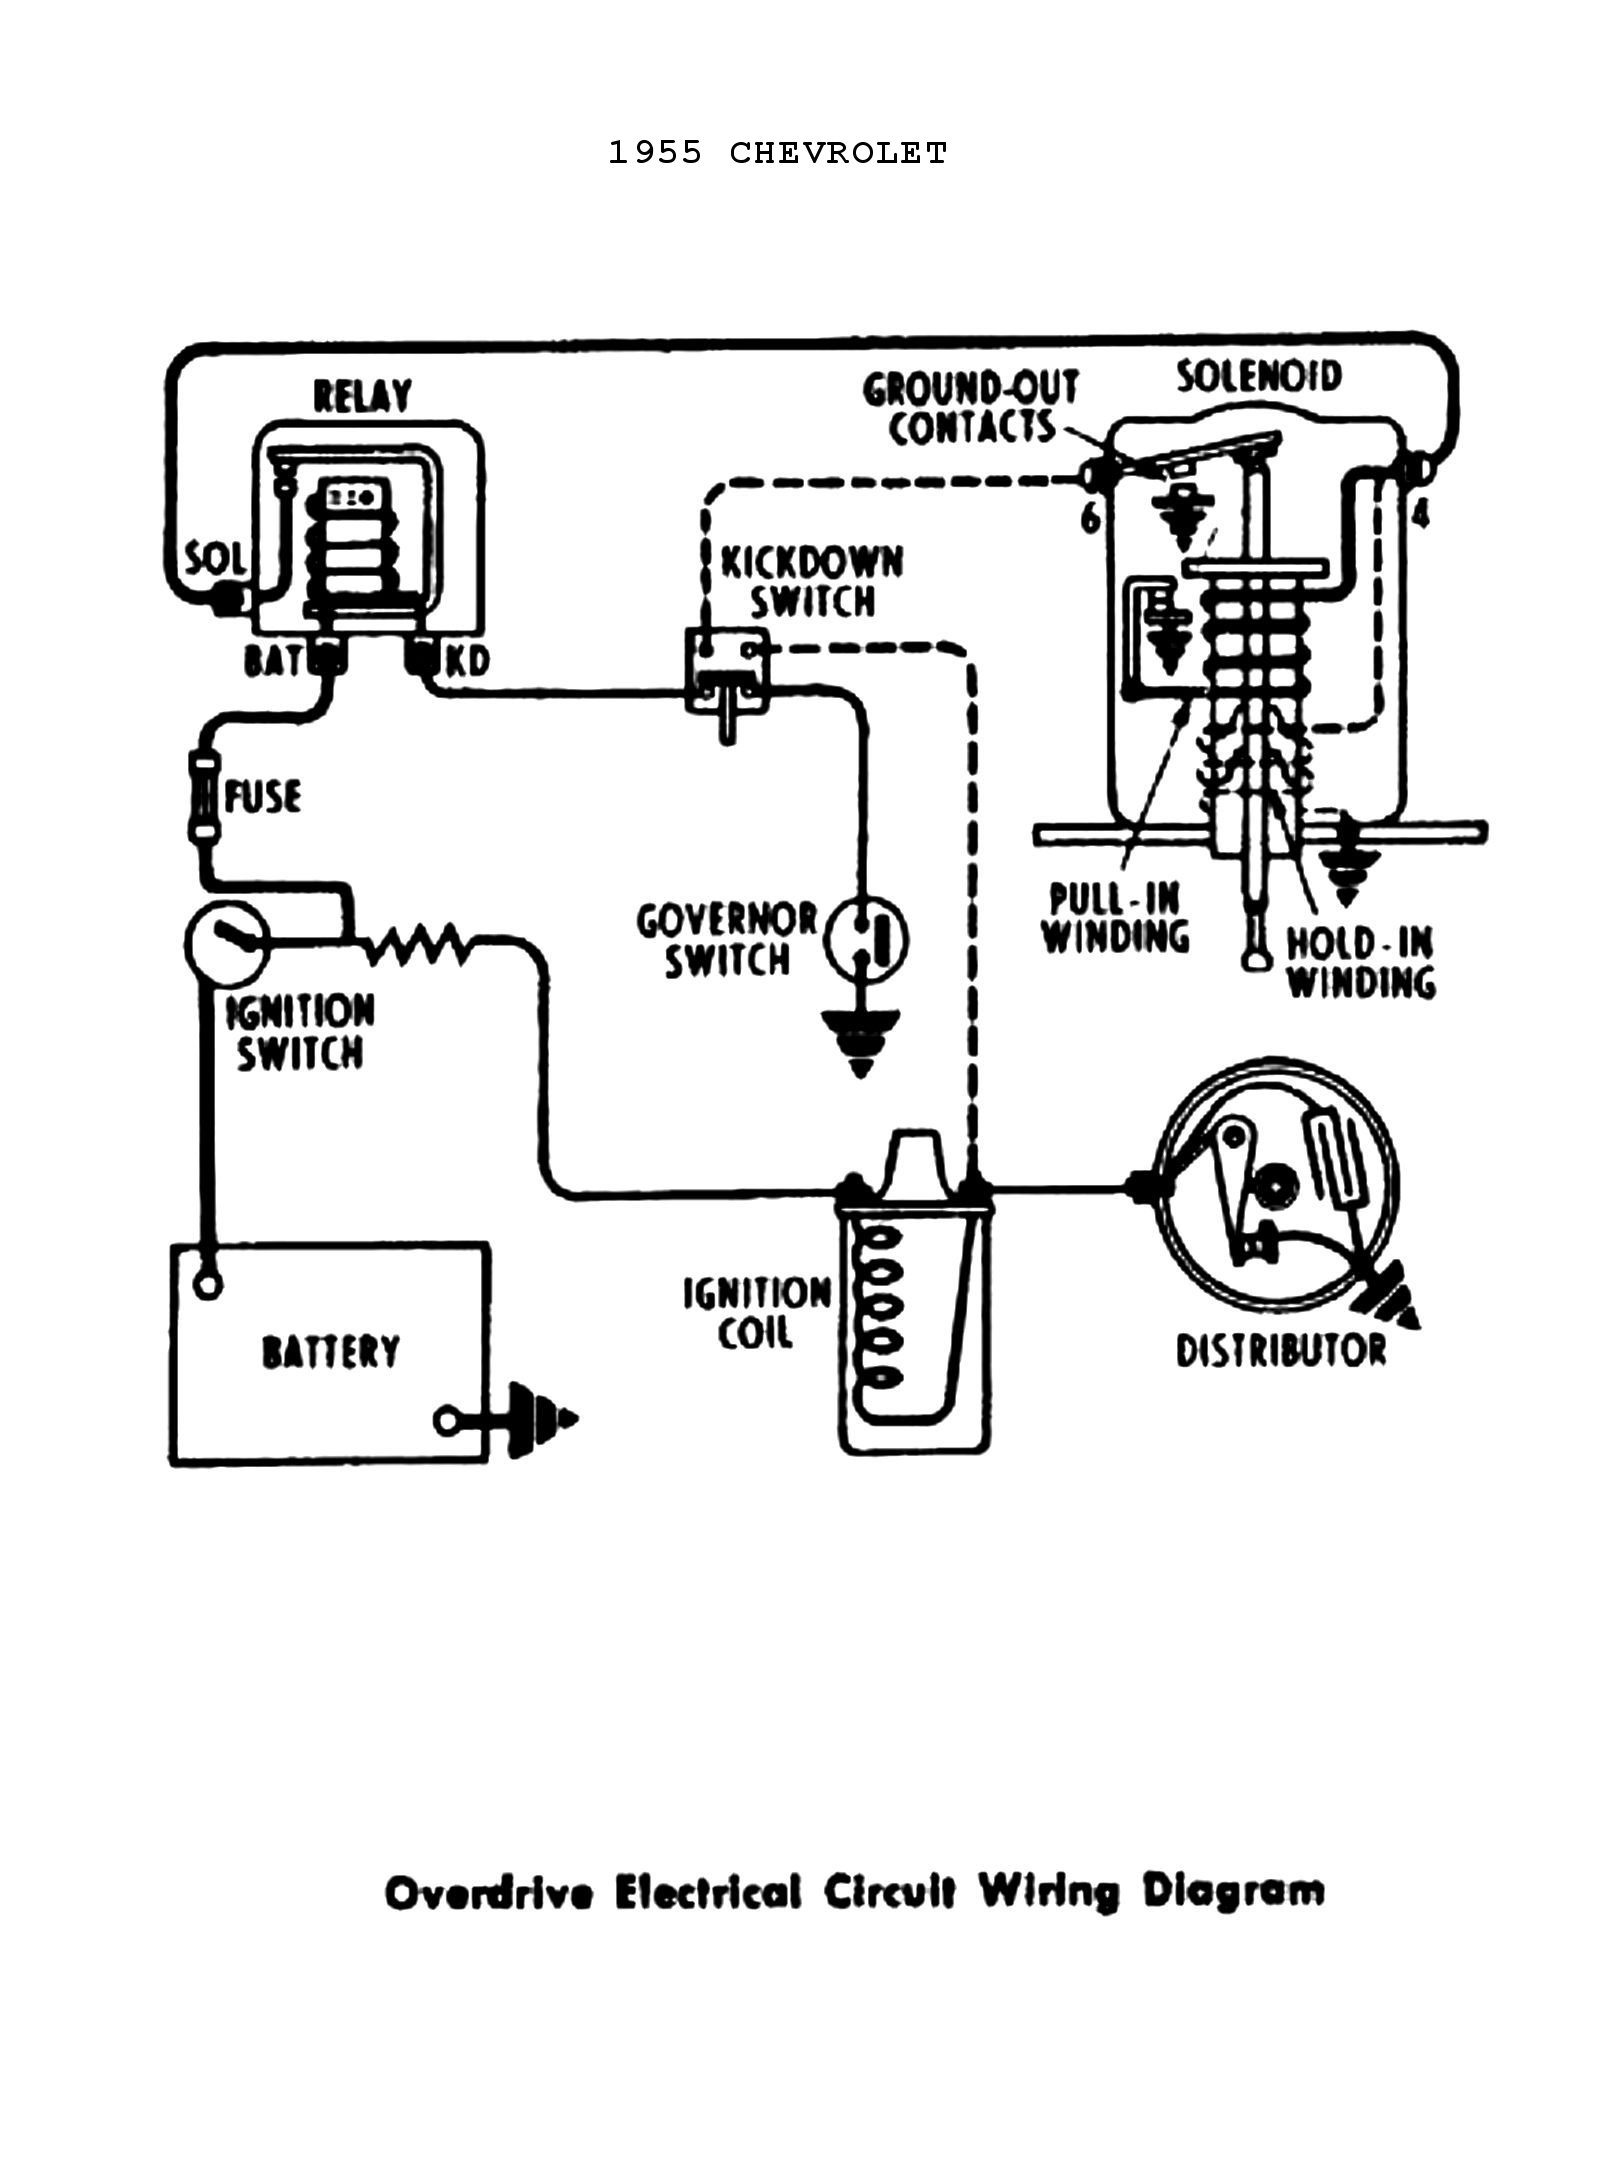 700r4 trans pump diagram  700r4  free engine image for user manual download